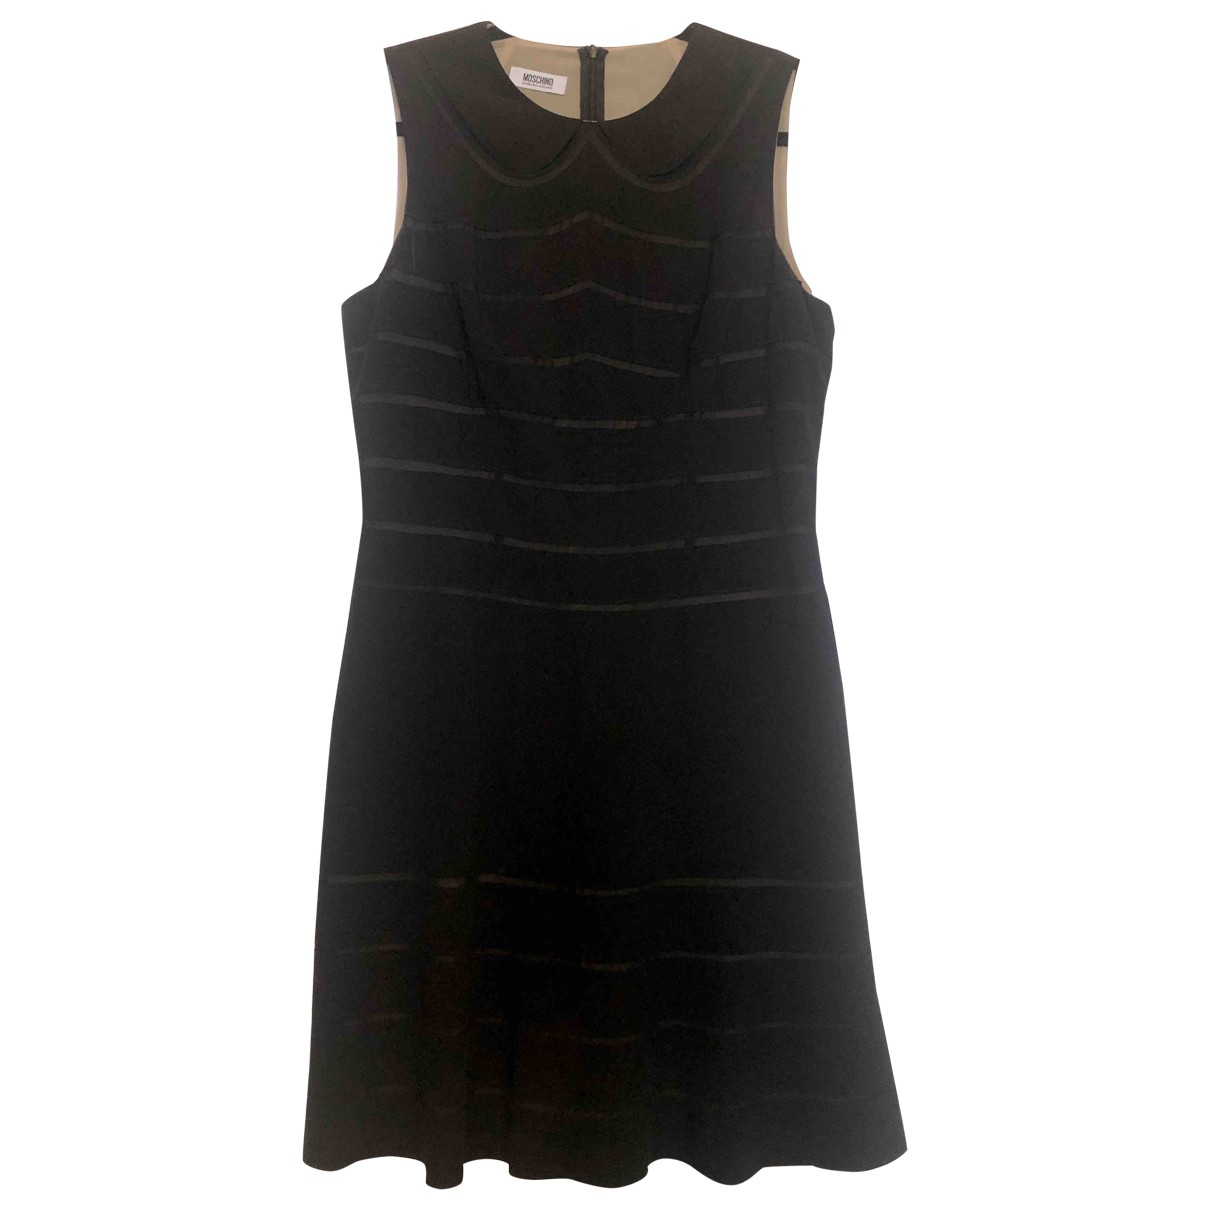 Moschino Cheap And Chic \N Black dress for Women 12 UK